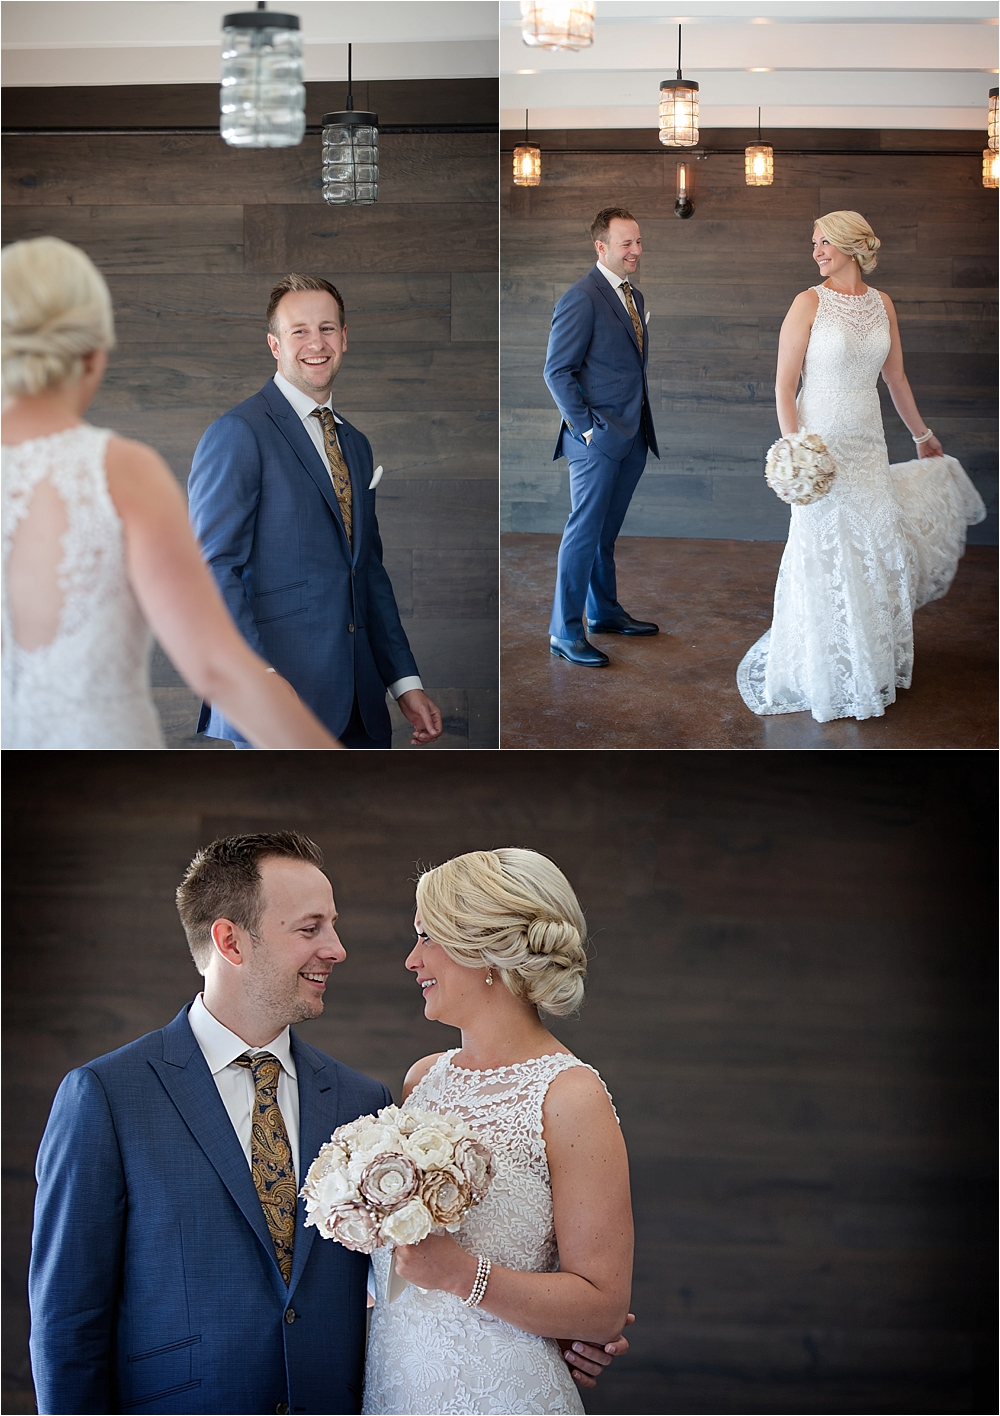 Trina + Elliott's Downtown Denver Wedding_0022.jpg